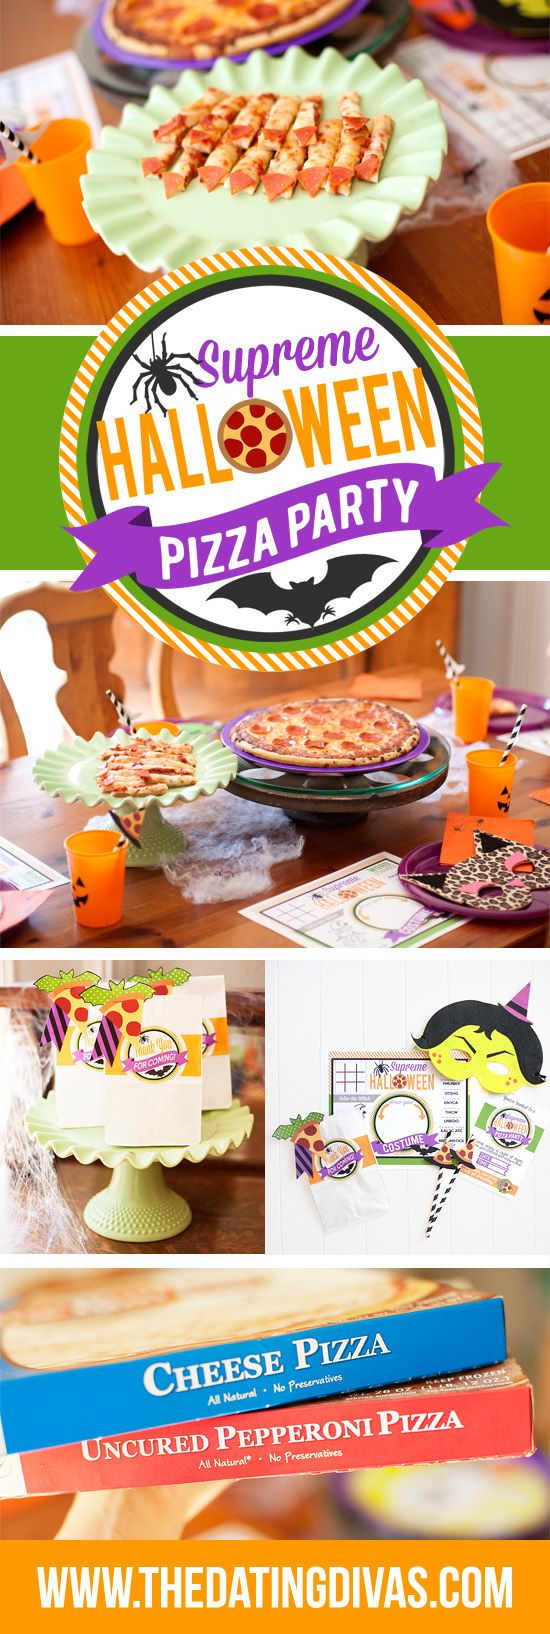 Halloween Pizza Party with frozen pizza and cute printables! www.TheDatingDivas.com